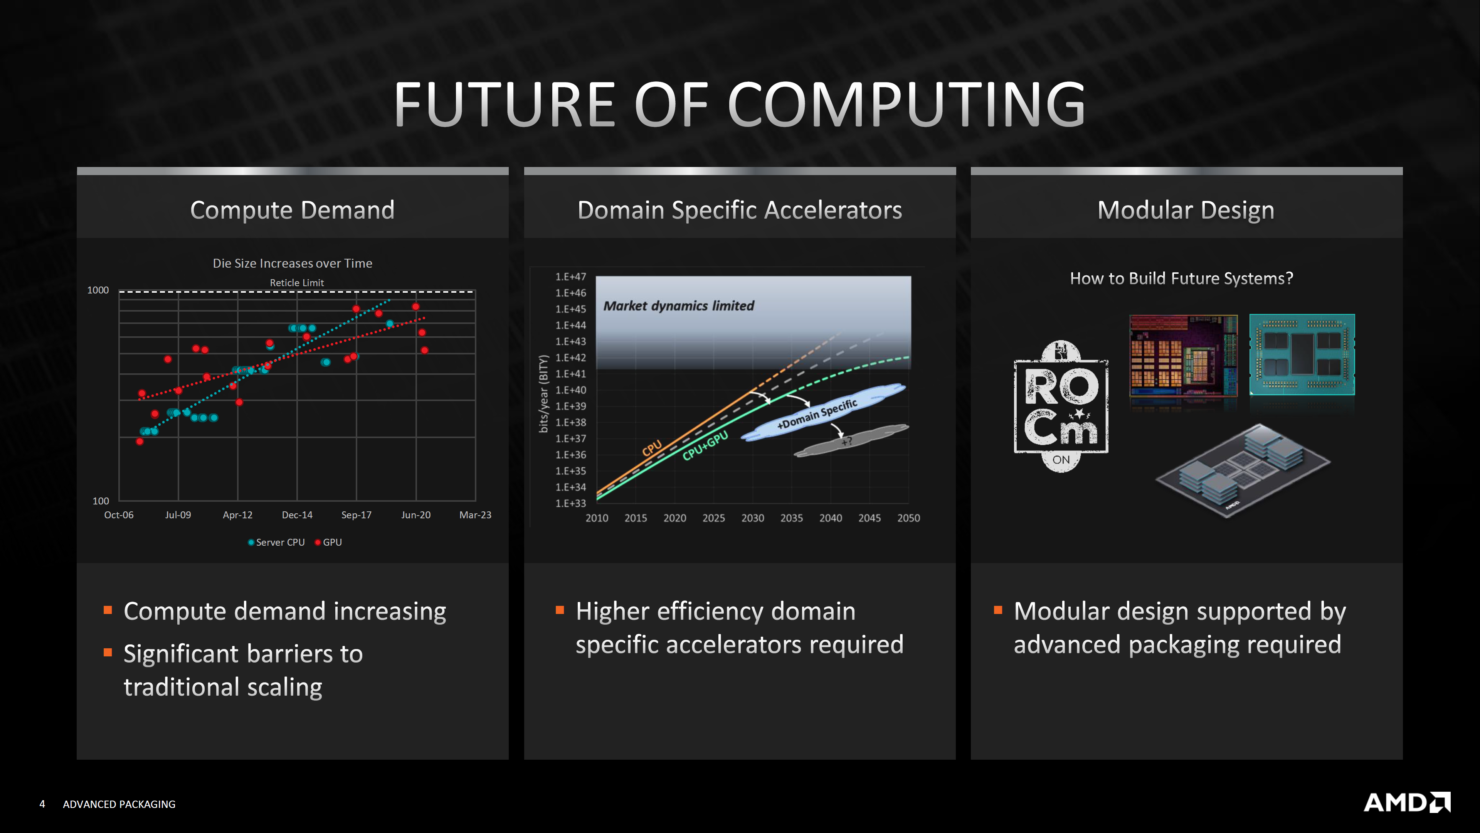 amd-advanced-3d-chiplet-packaging-3d-stacking-technologies-3d-v-cache-_3